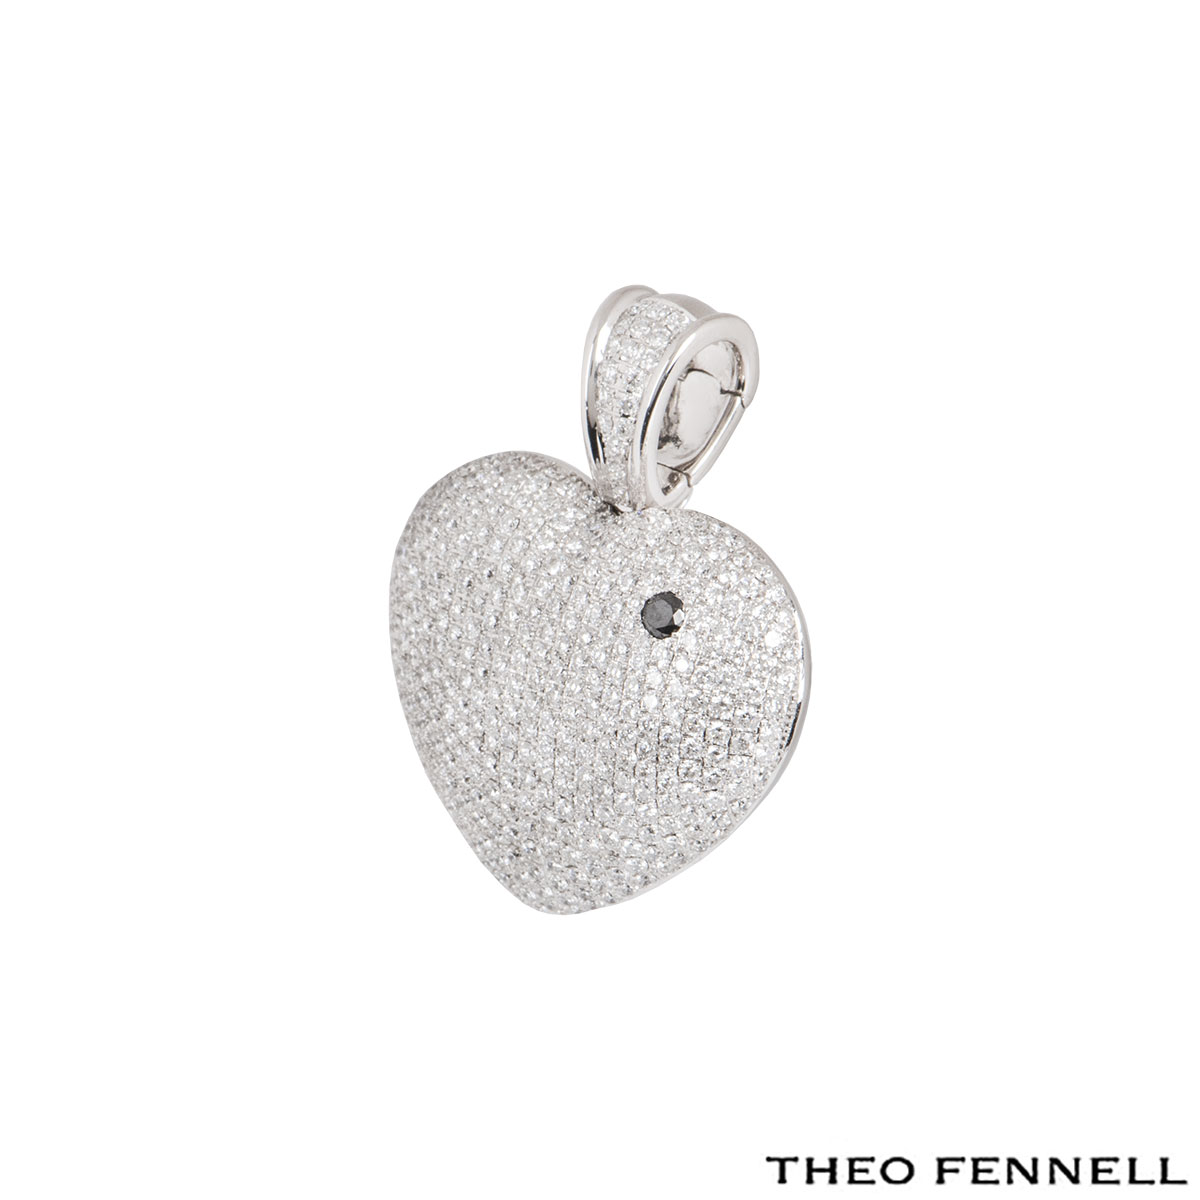 Theo Fennell White Gold Diamond Heart Art Pendant